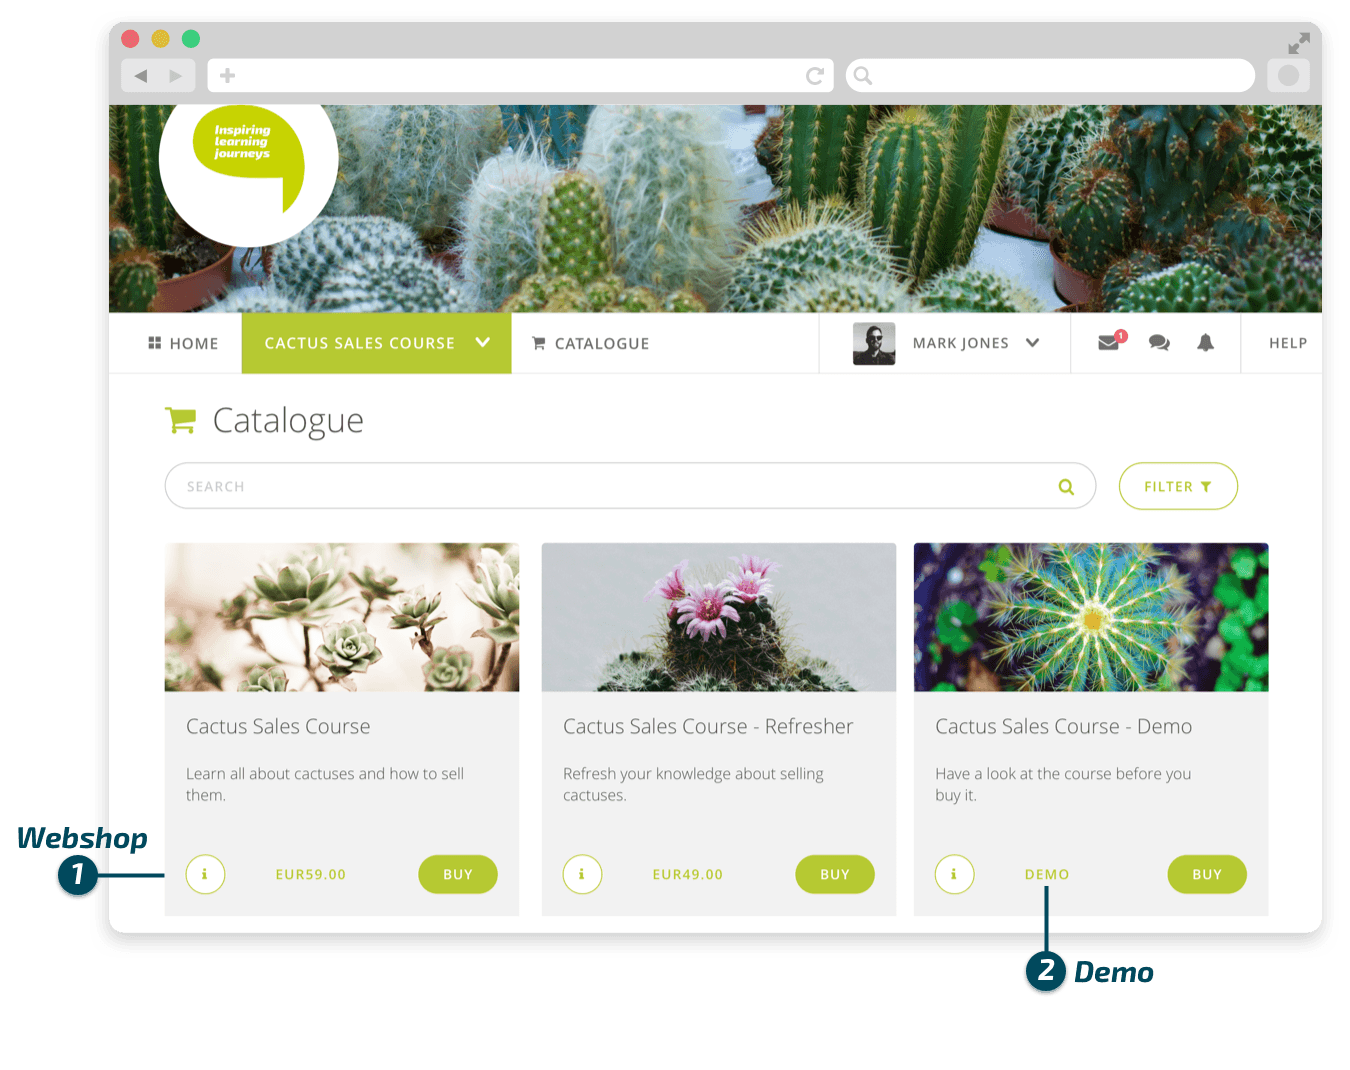 The catalog feature allows organizations to sell their courses online